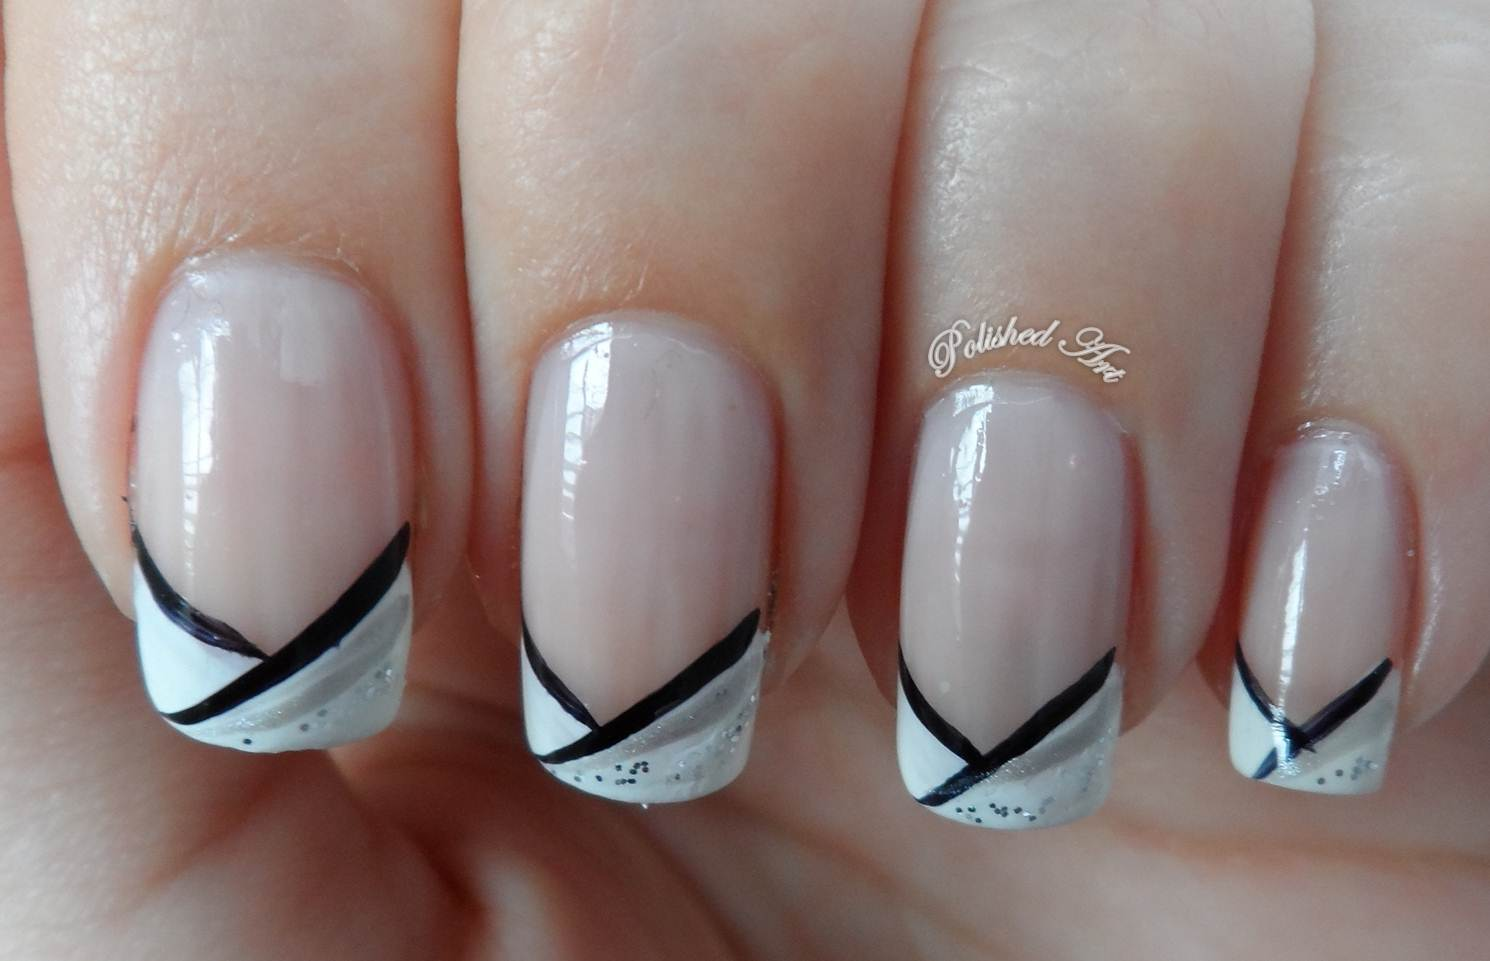 Black Nail Art On White Tips: Very stylish black french tip nail art ...